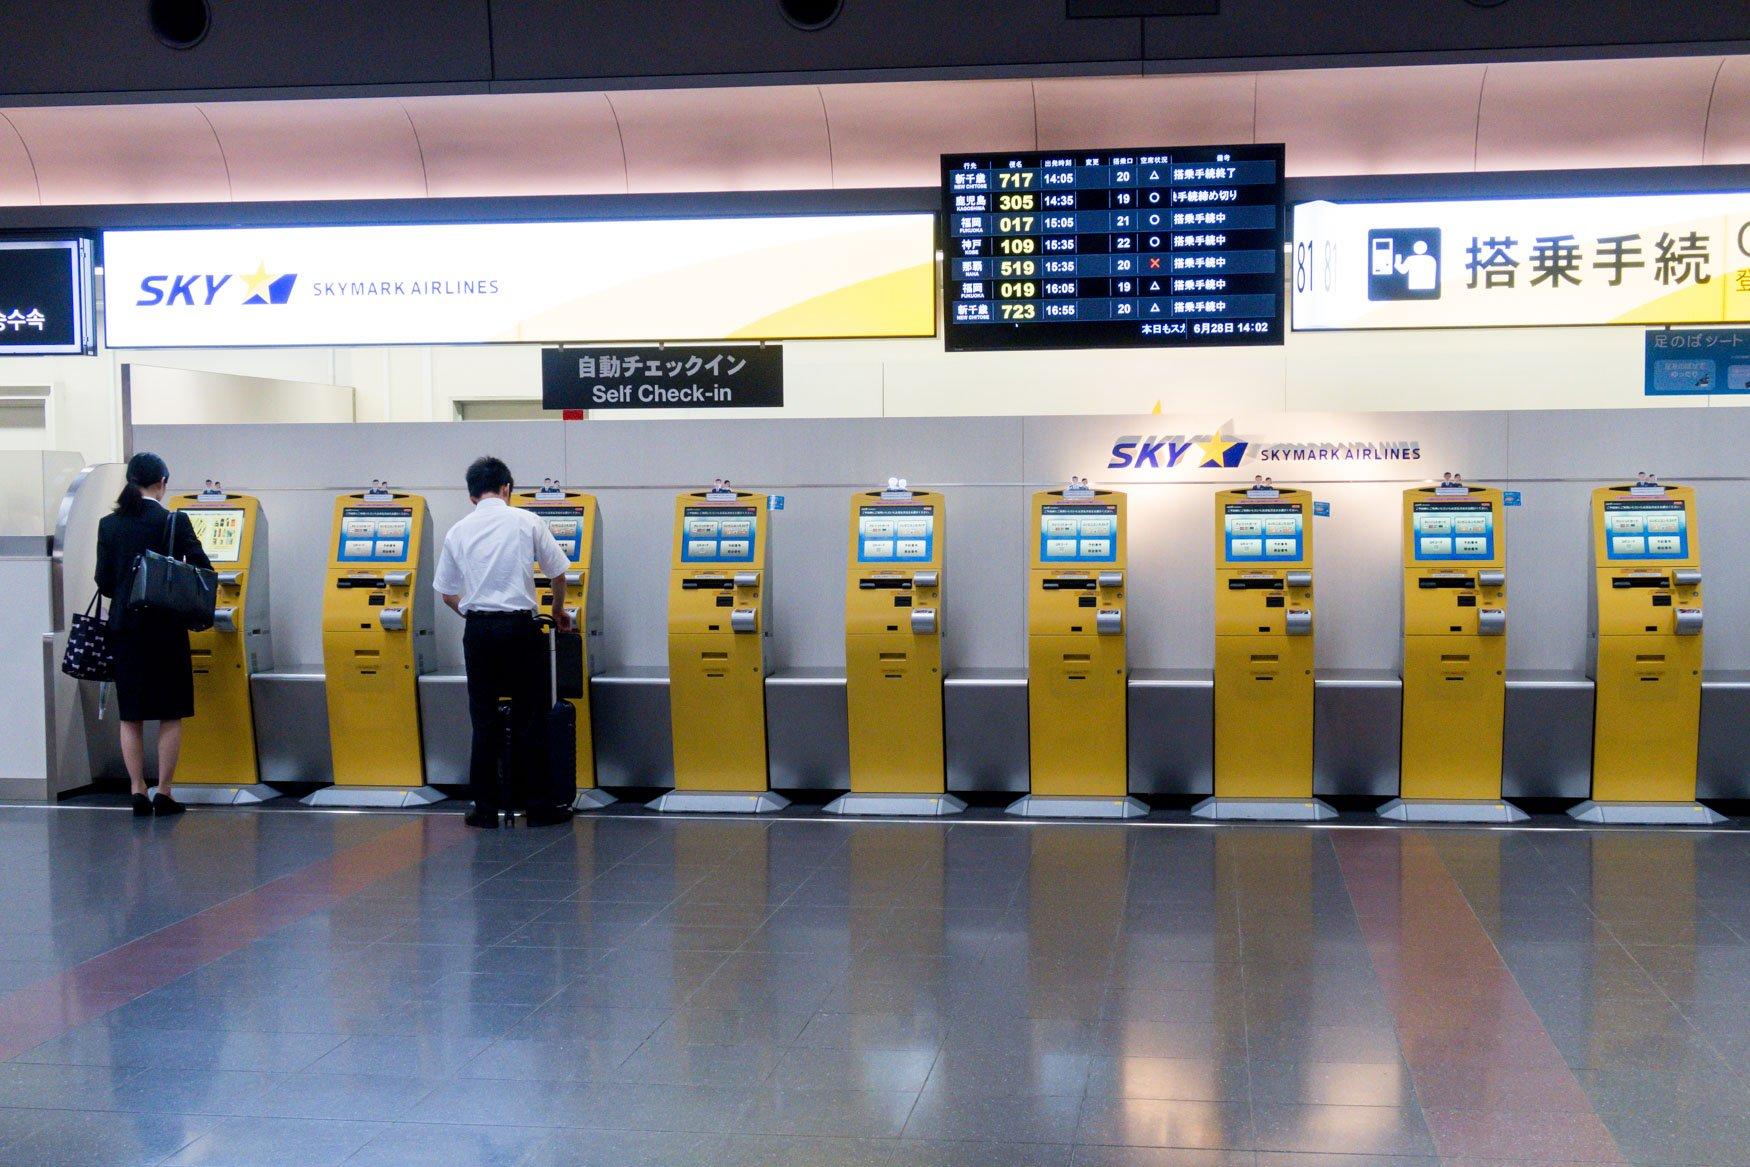 Skymark Airlines Self Check-In Machines